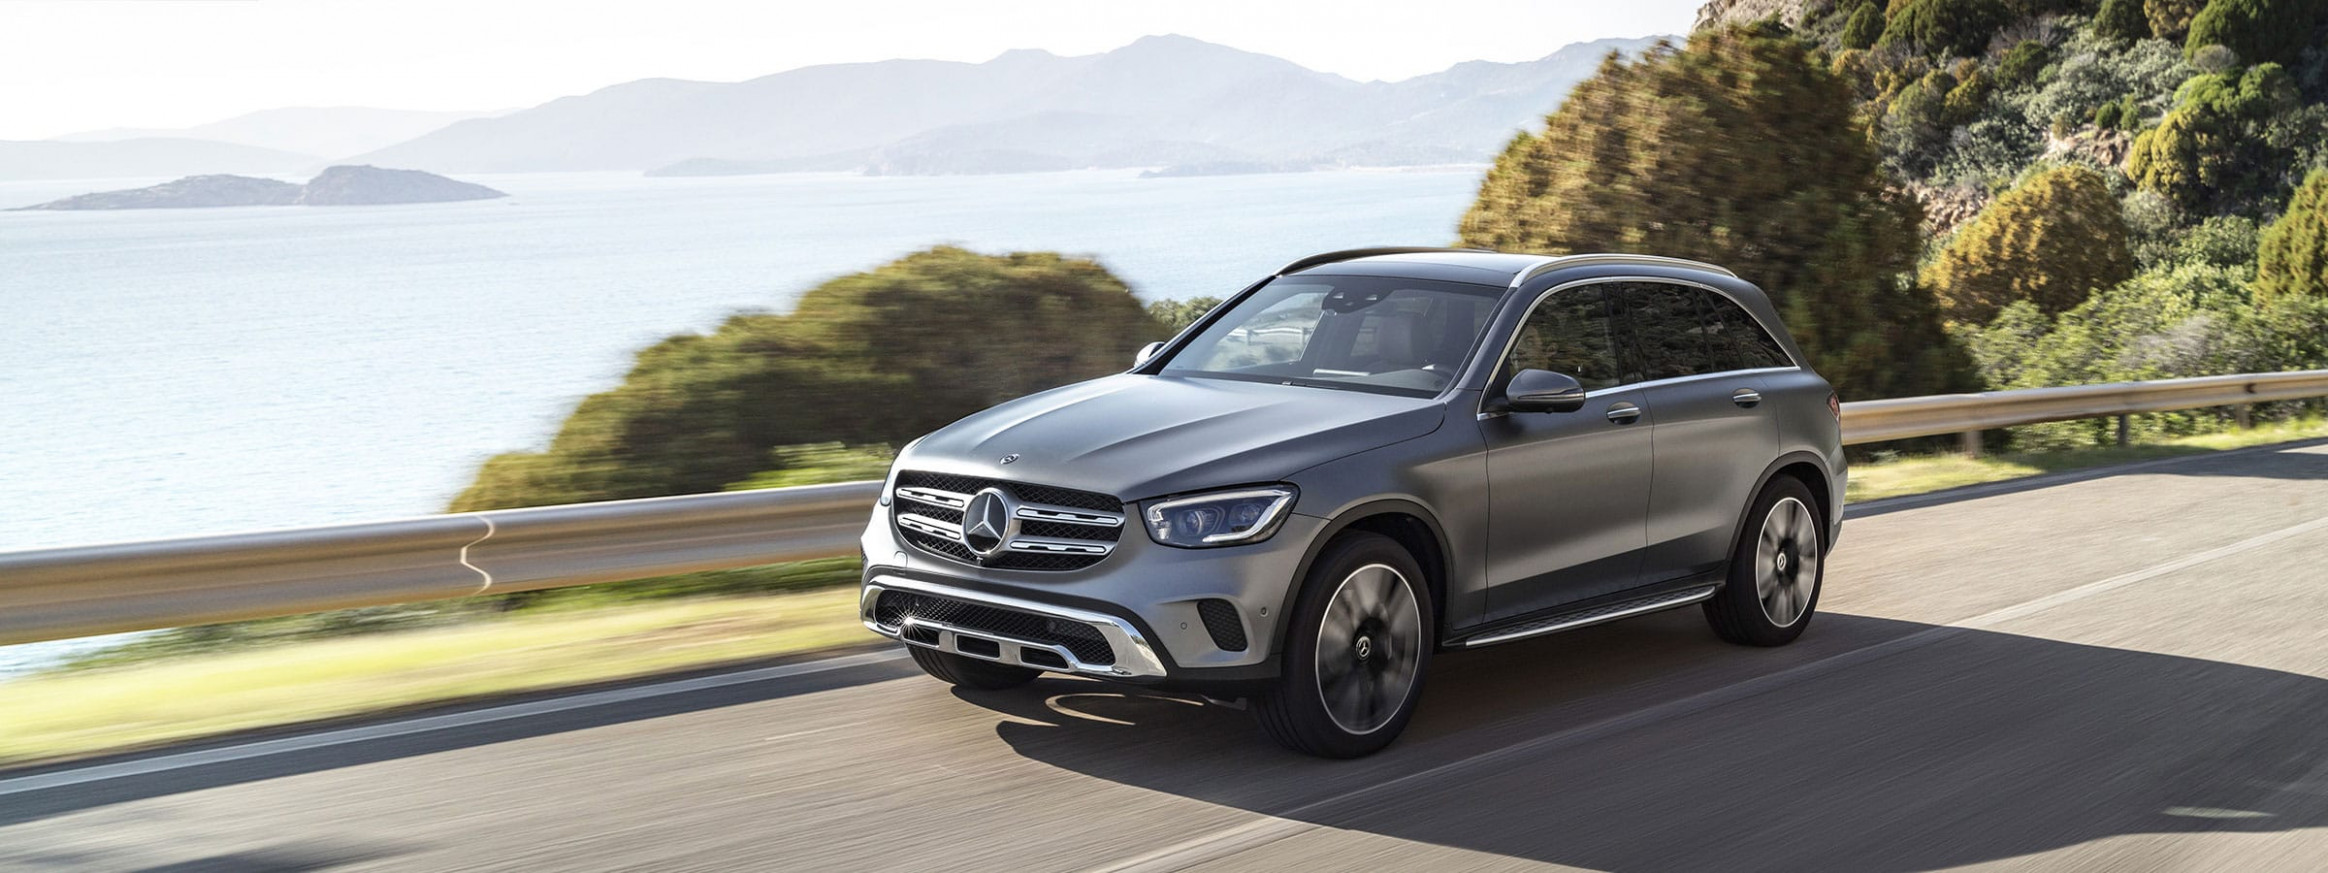 12 GLC SUV | Future Vehicles | Mercedes-Benz USA - mercedes suv 2020 models